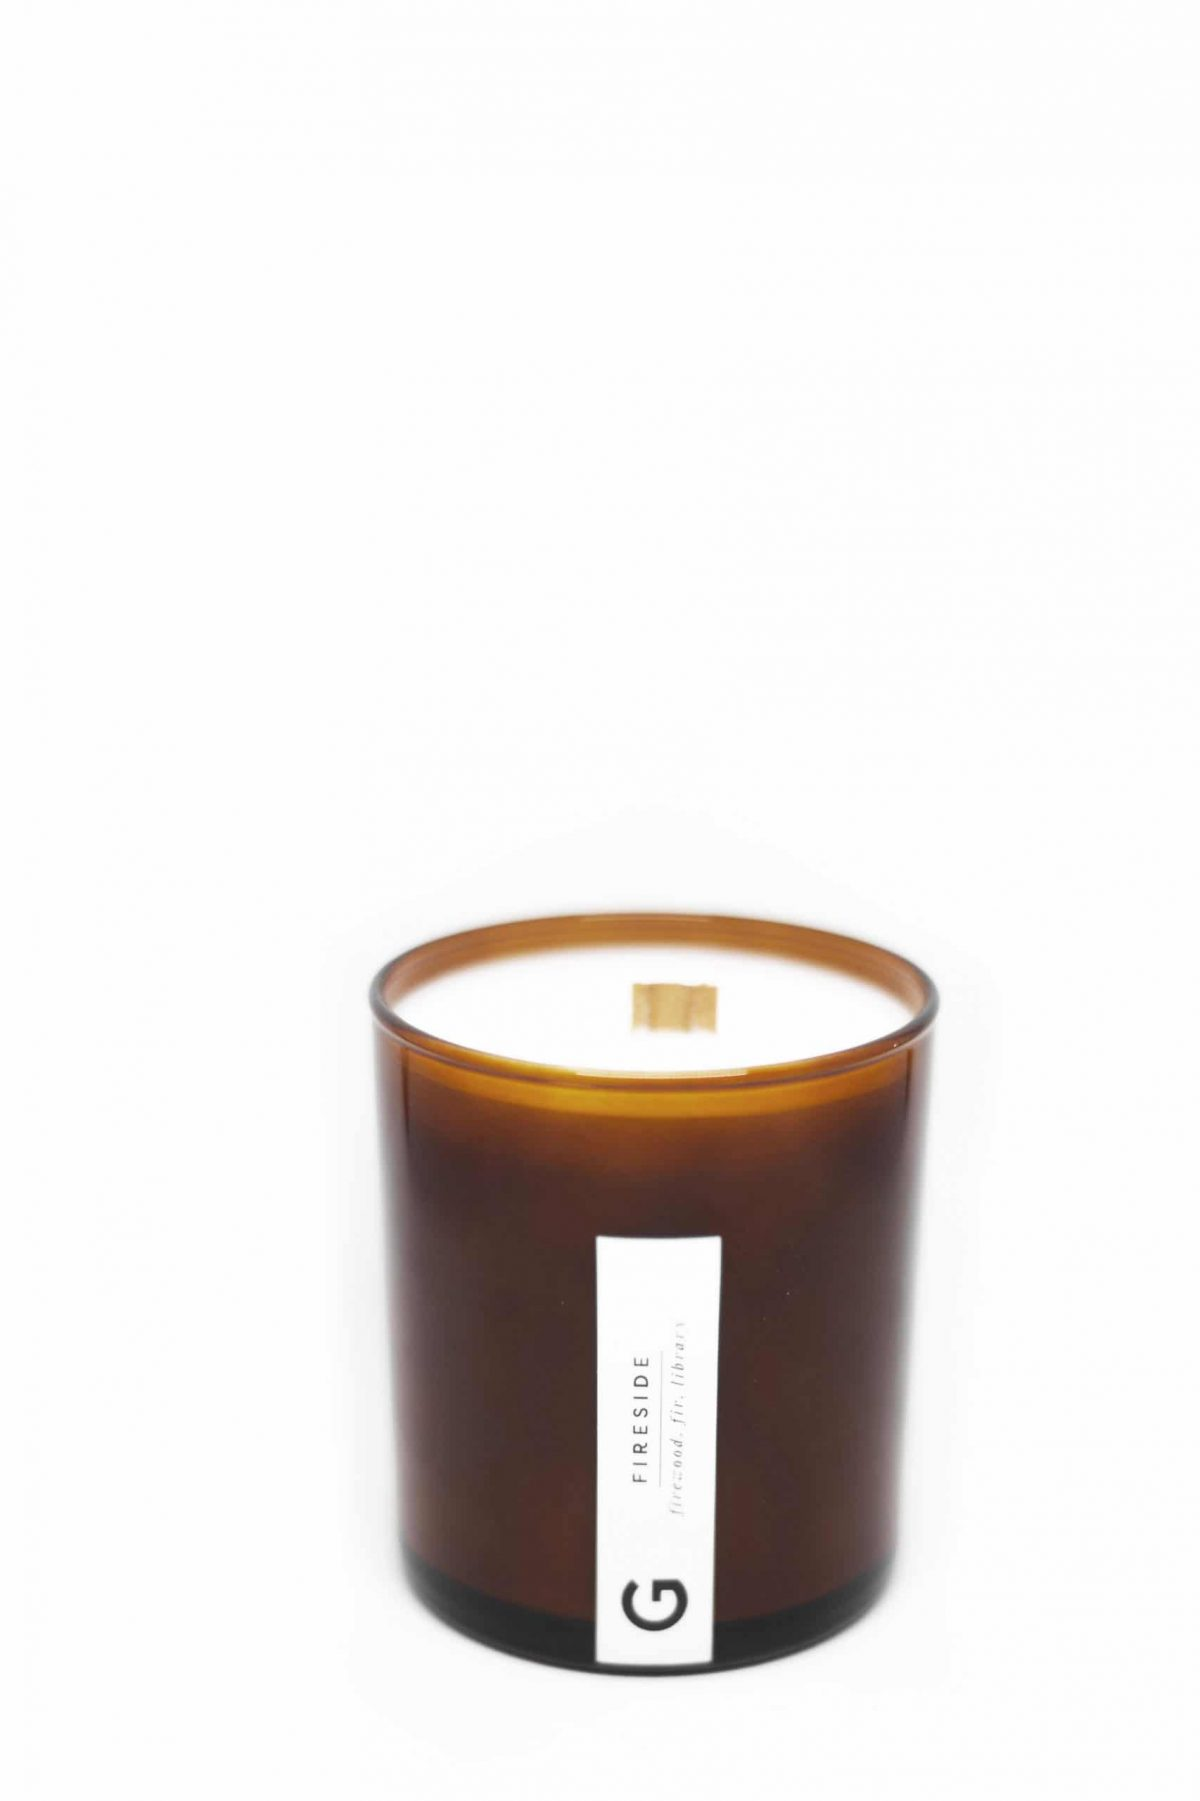 """Candle in amber colored glass. Wax is white with a natural wooden wick. A white horizontal label placed vertically displays a """"G"""" logo and reads """"FIRESIDE   firewood, fir, library"""""""